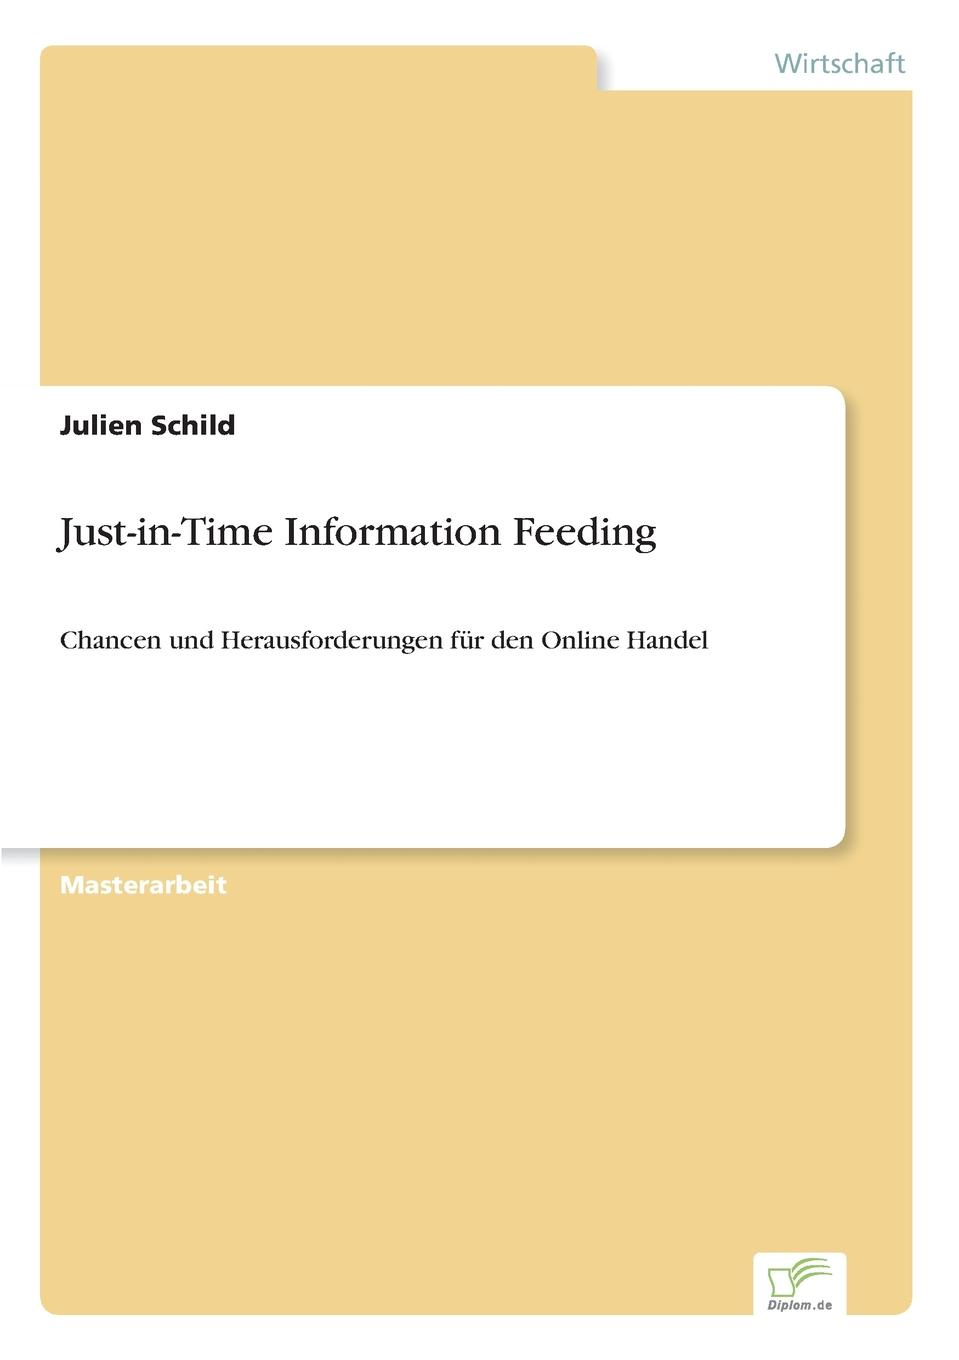 Julien Schild Just-in-Time Information Feeding daniela schultz wandel des outbound zum inbound marketing content marketing als erfolgs und zukunftsfaktor hinsichtlich markenfuhrung und unternehmenskommunikation